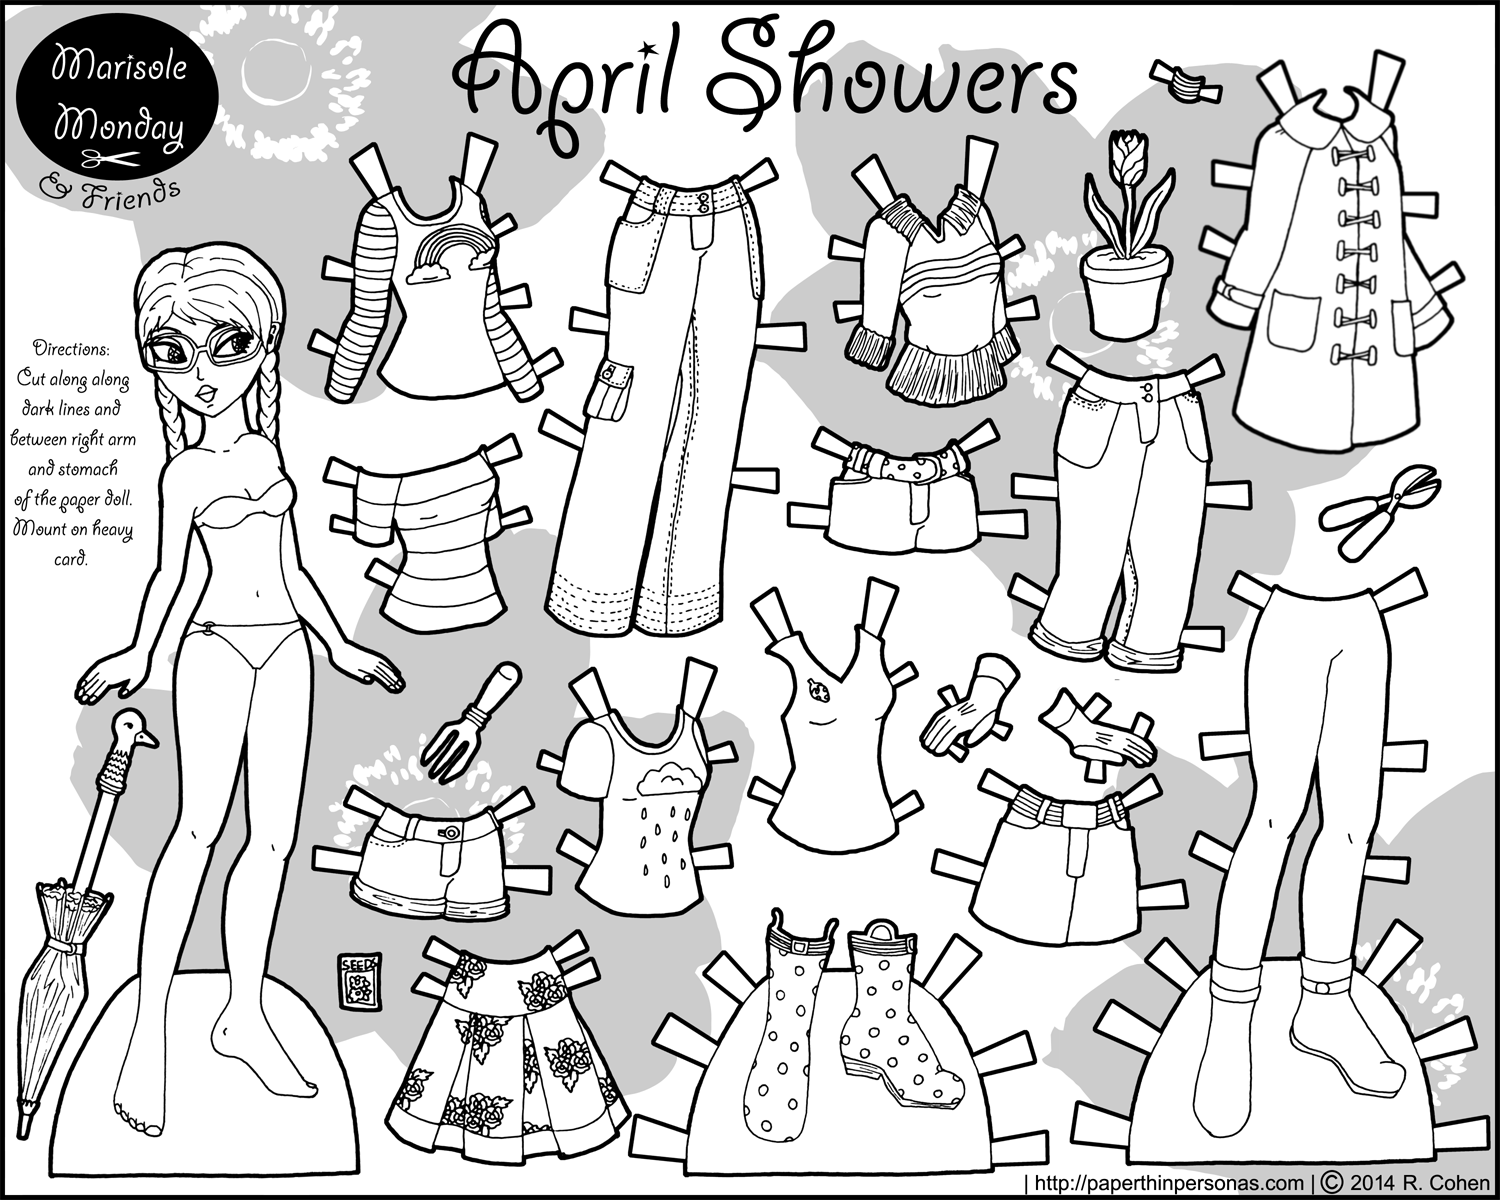 1000 images about marisole monday paper dolls on pinterest printable paper paper dolls and. Black Bedroom Furniture Sets. Home Design Ideas